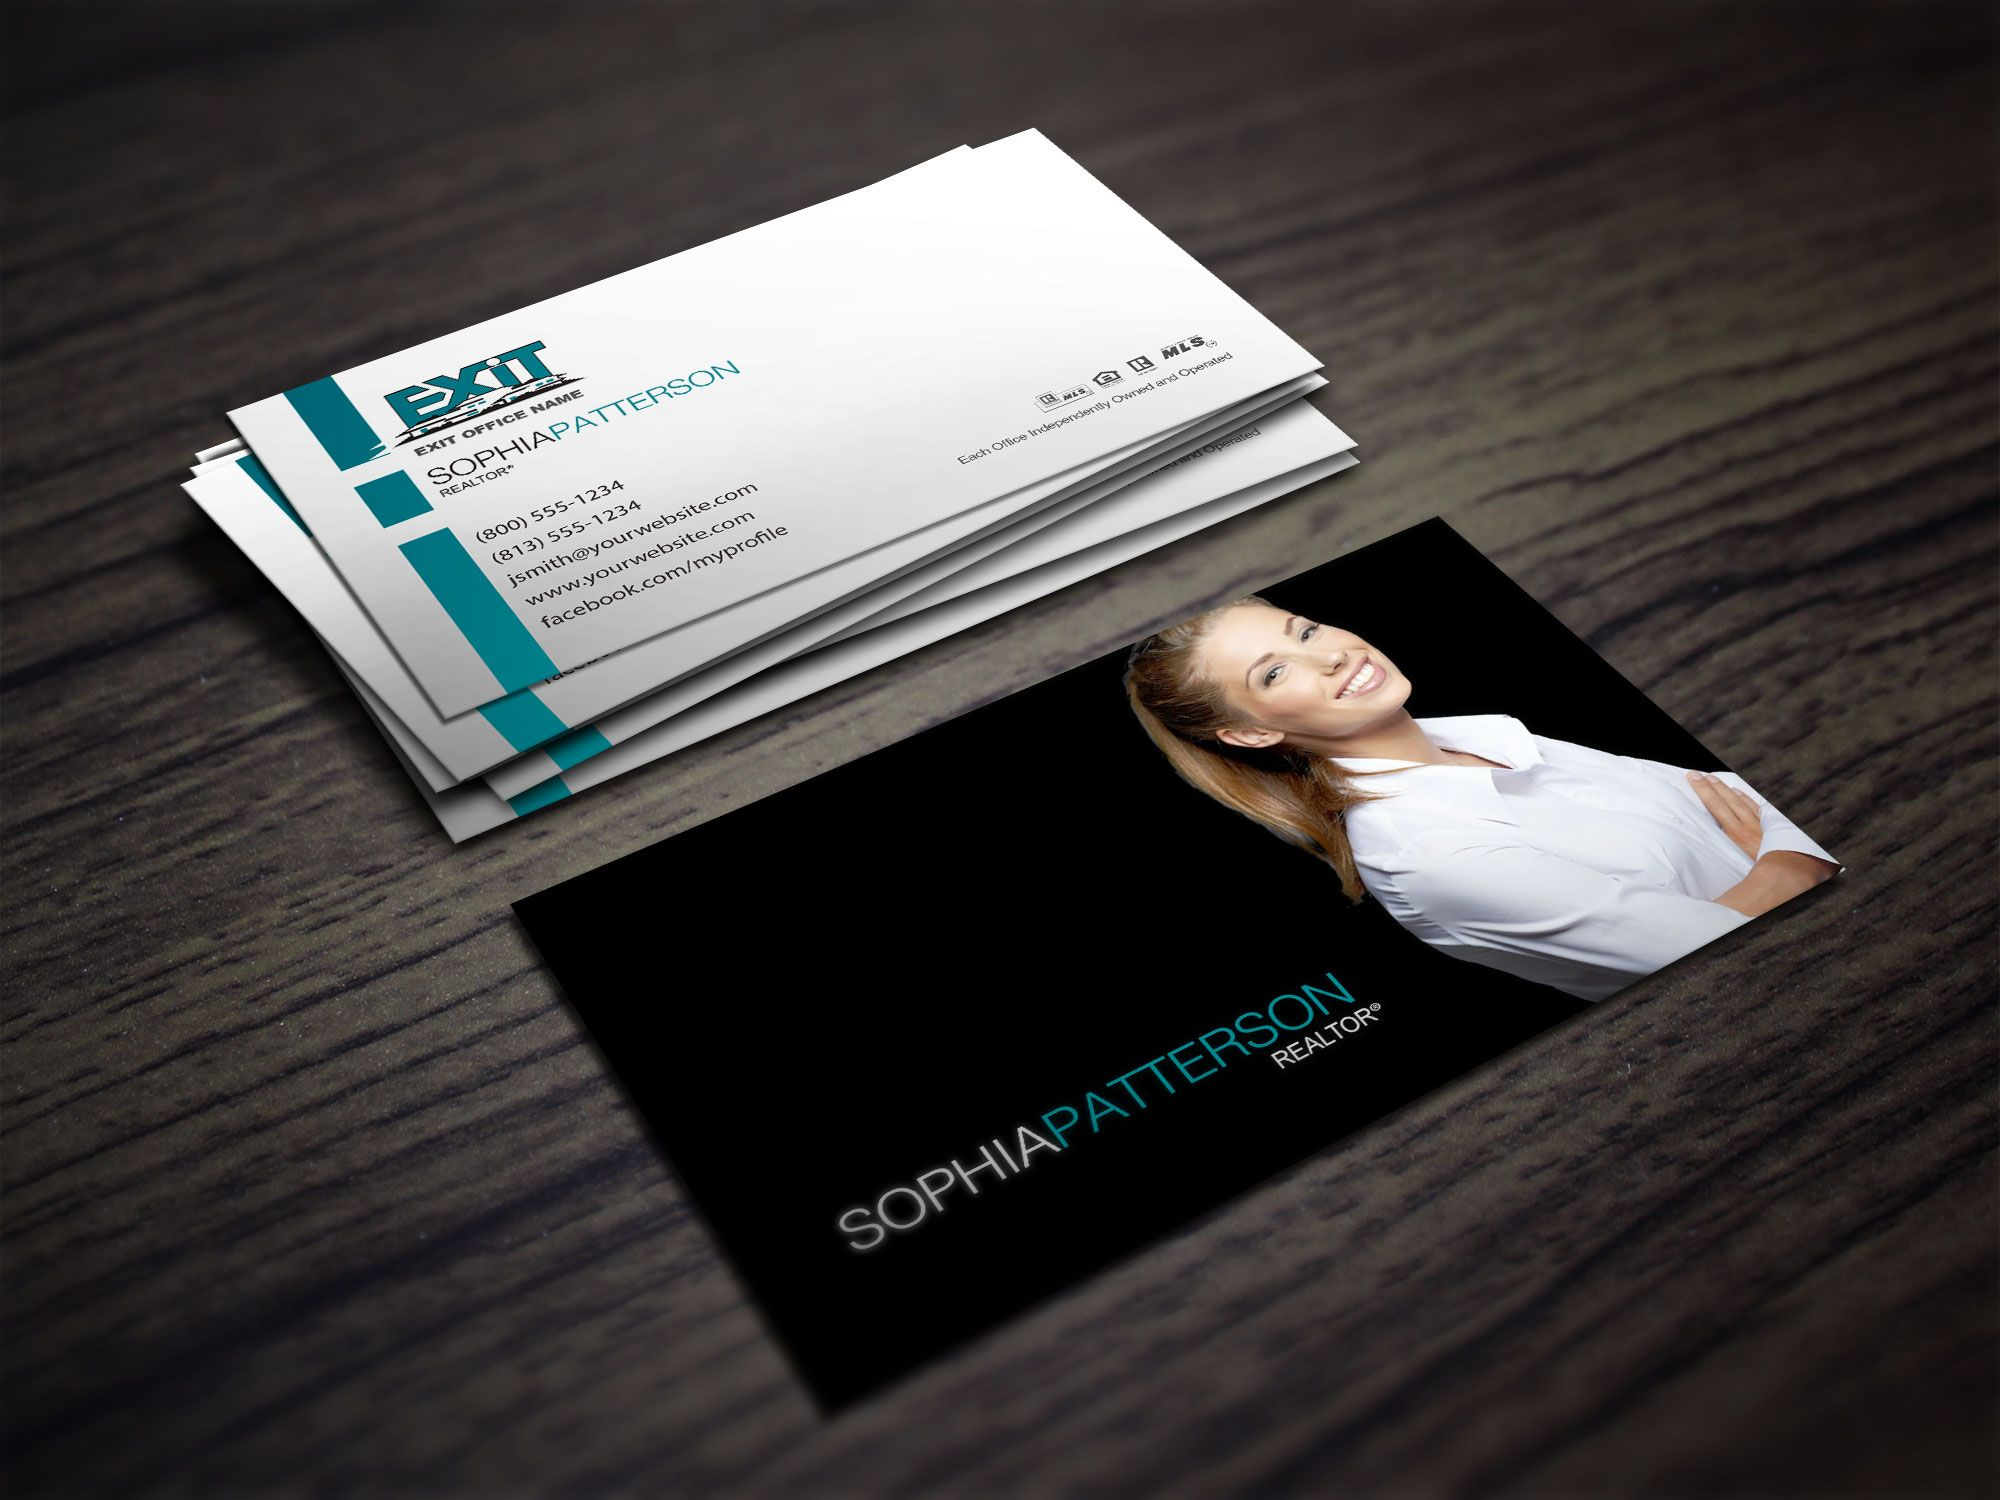 Clean and modern exit realty business card designs for realtors clean and modern exit realty business card designs for realtors reheart Gallery